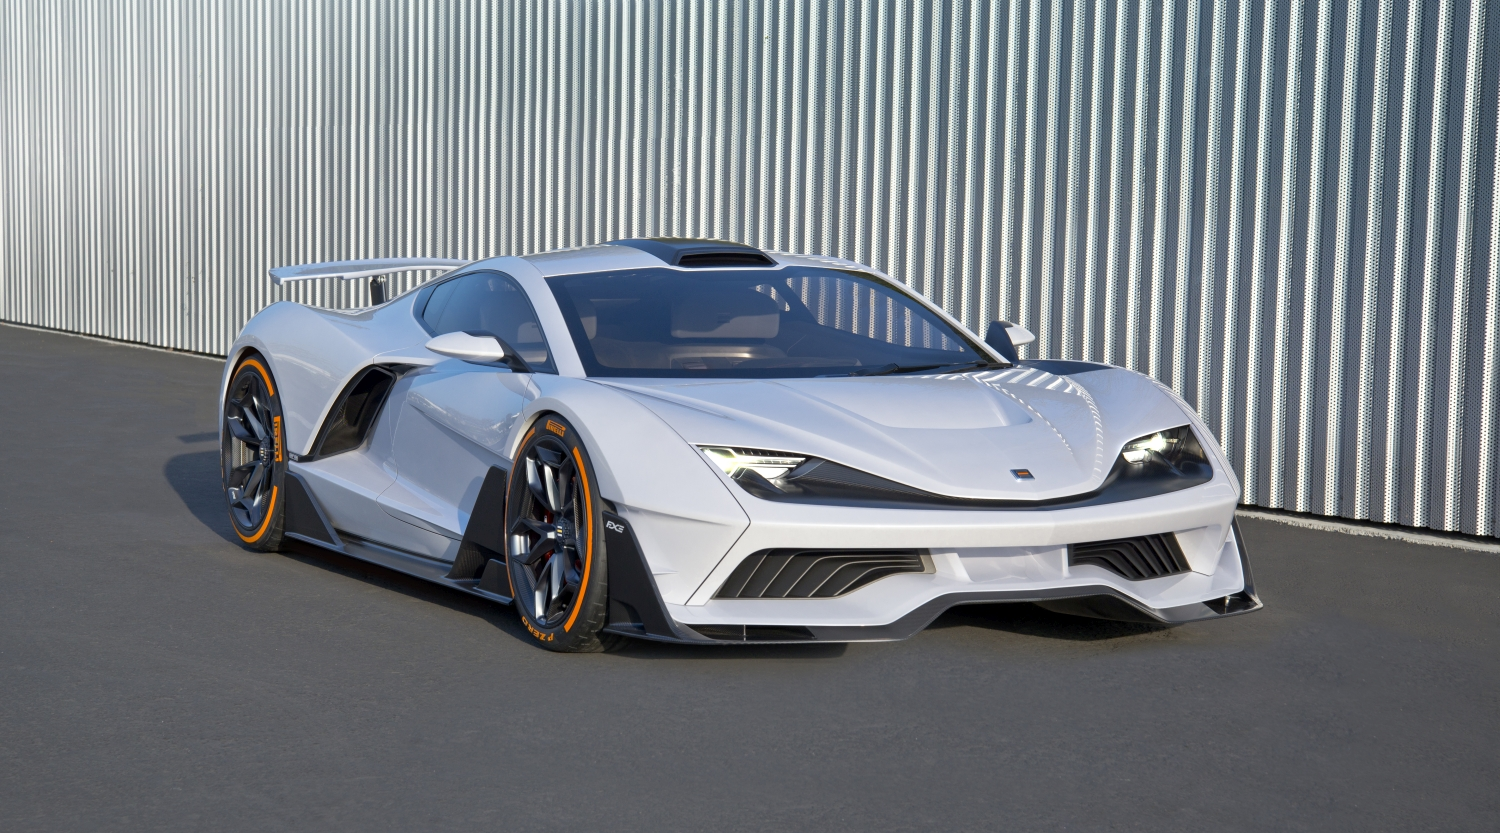 Official: Aria FXE Hybrid Supercar